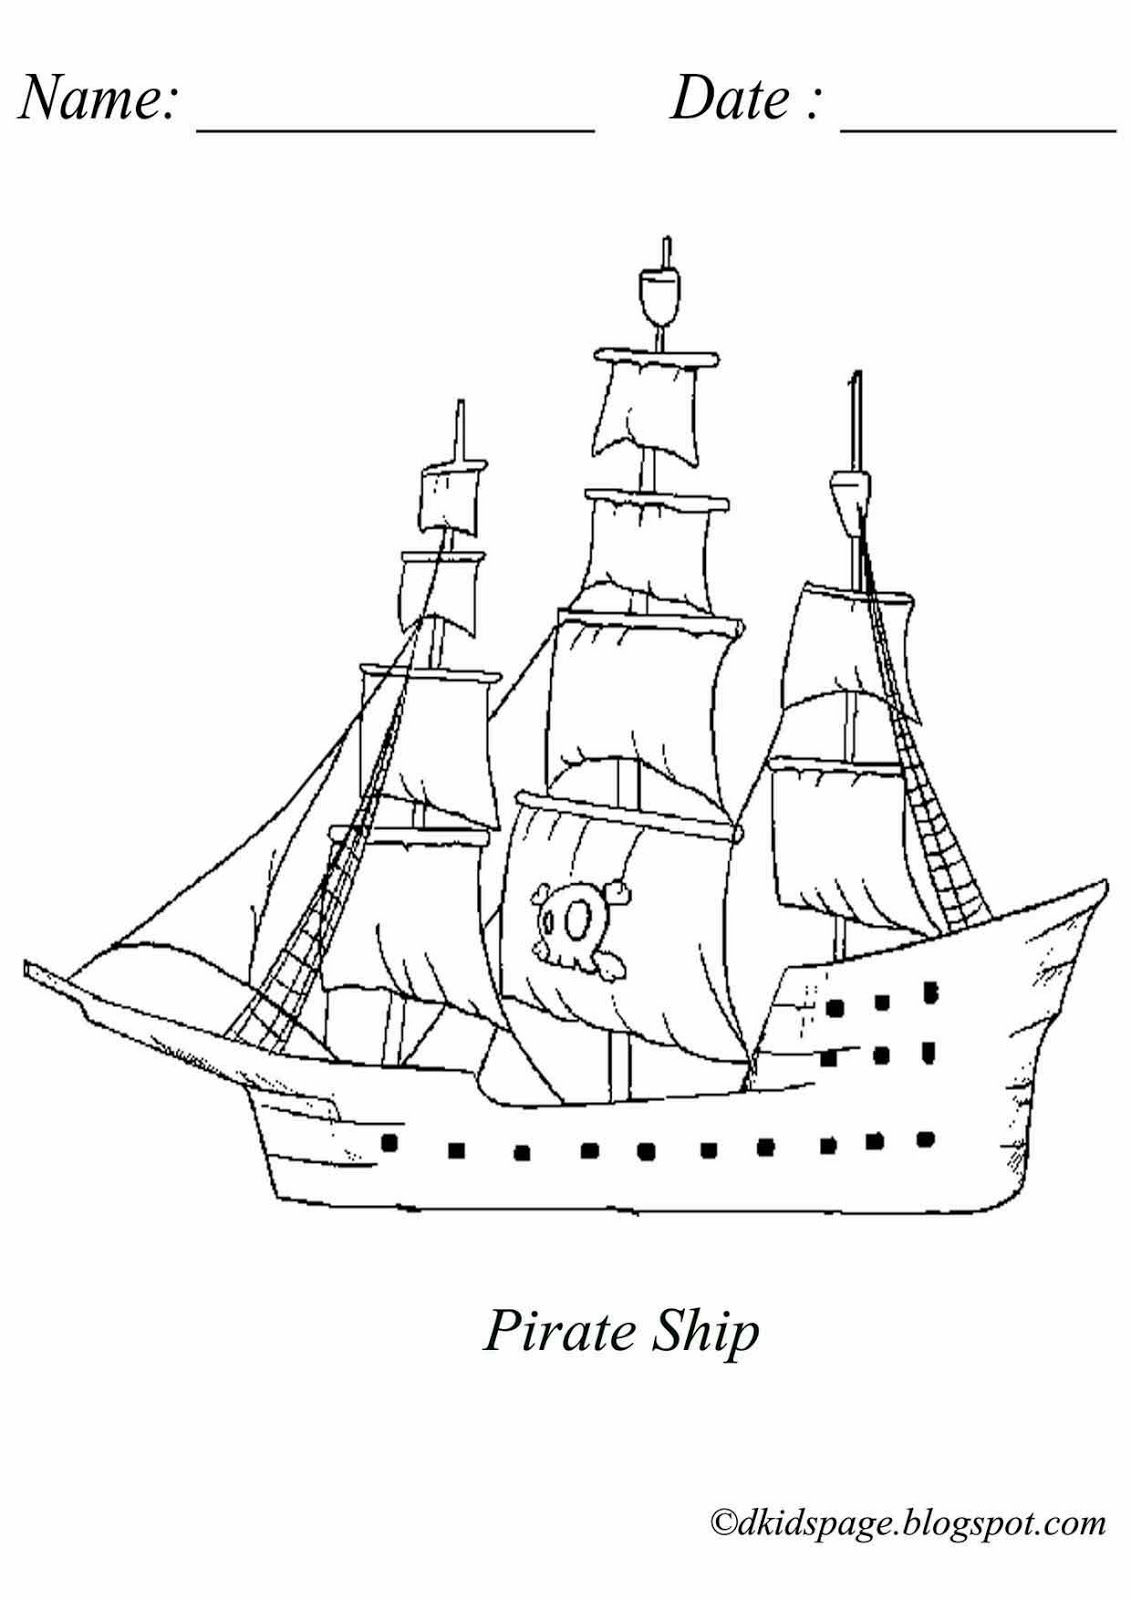 Pirate Ship Coloring Page Pirate Ship Drawing Pictures Of